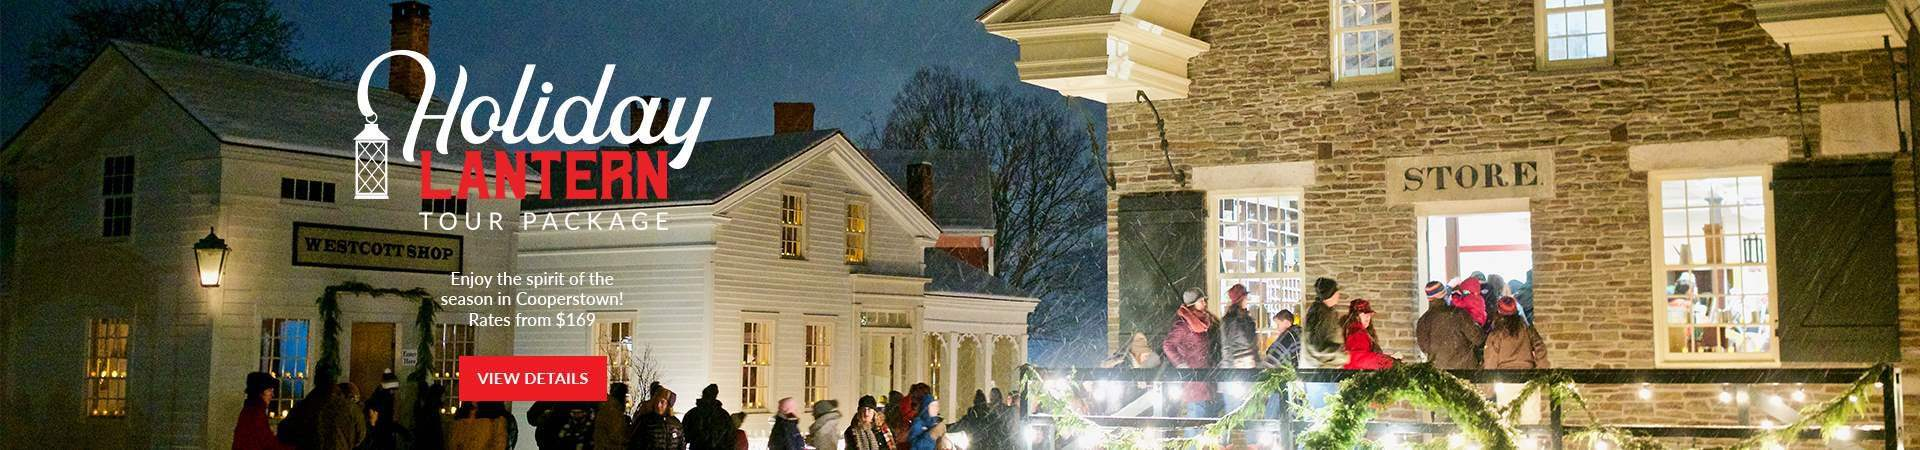 Holiday Lantern Tour Package